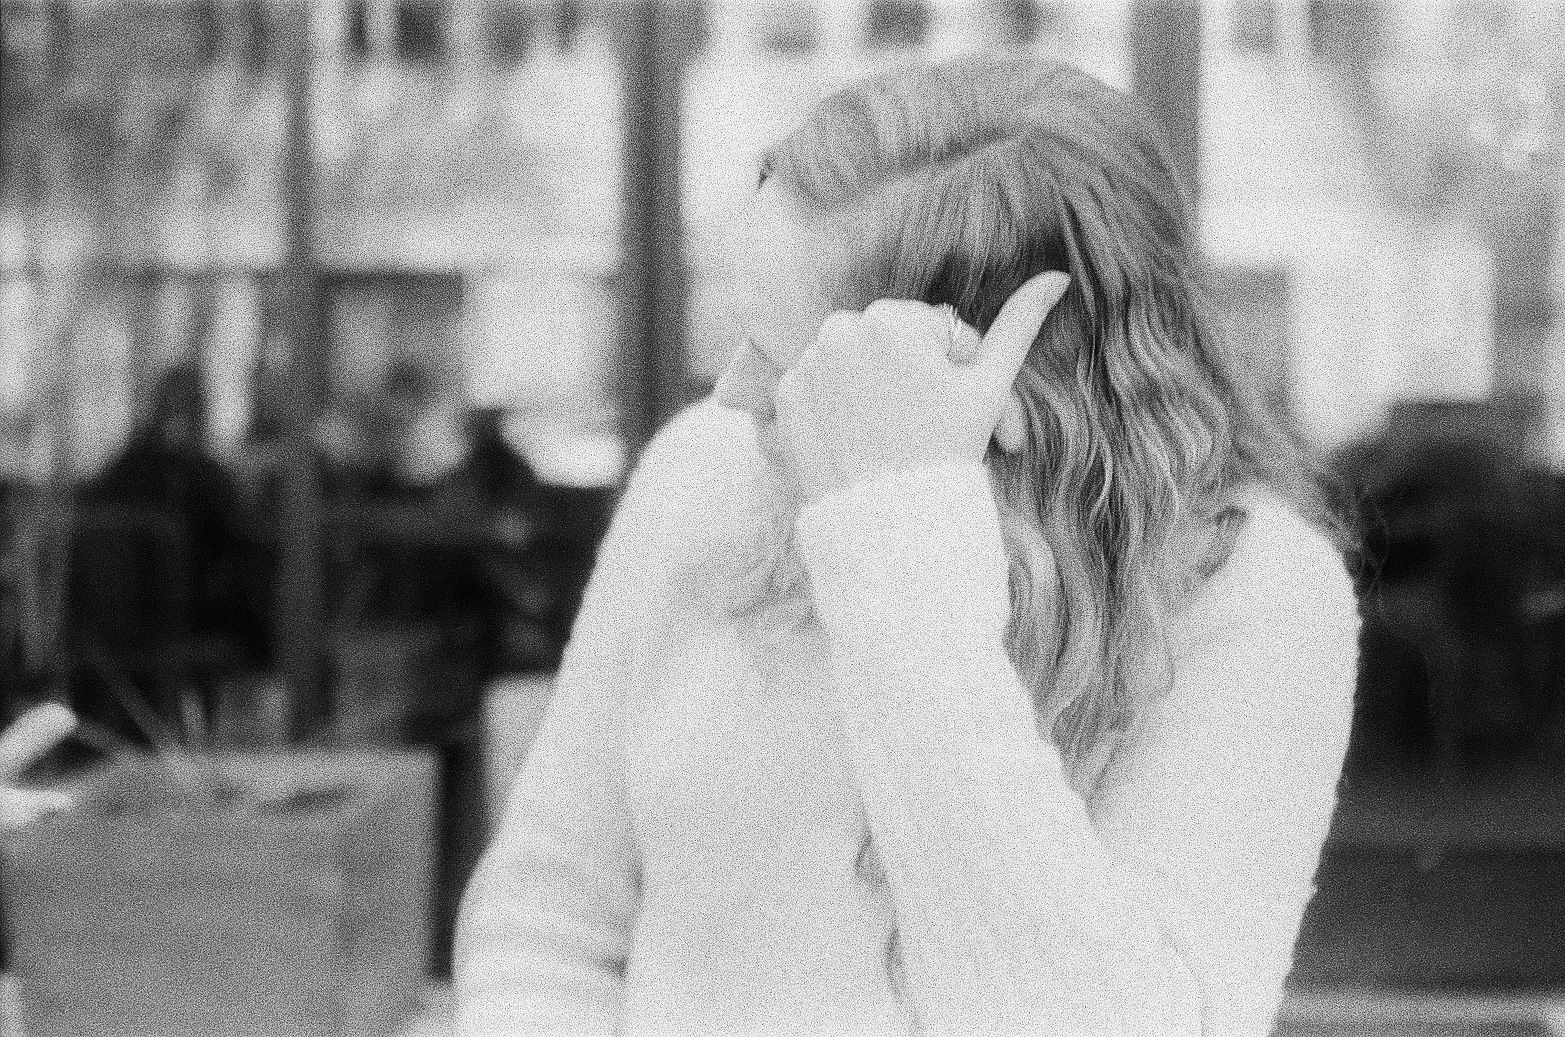 My First Time Shooting B&W Film Kodak 400TX 35MM | SarahMichiko.com